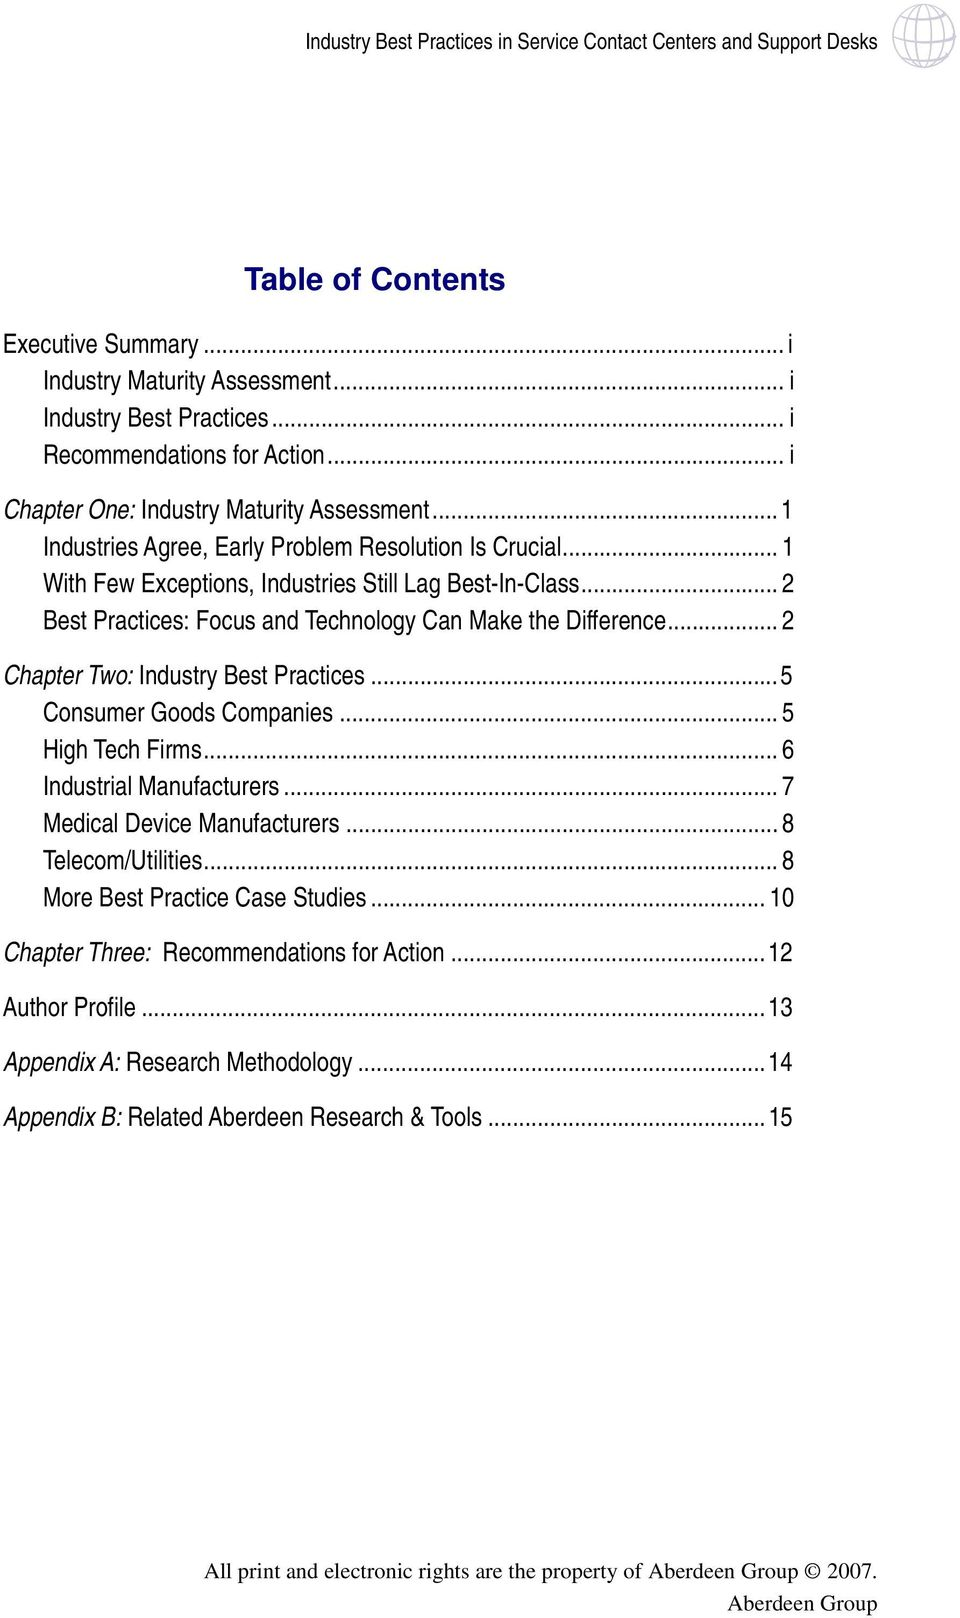 .. 2 Chapter Two: Industry Best Practices...5 Consumer Goods Companies... 5 High Tech Firms... 6 Industrial Manufacturers... 7 Medical Device Manufacturers... 8 Telecom/Utilities.